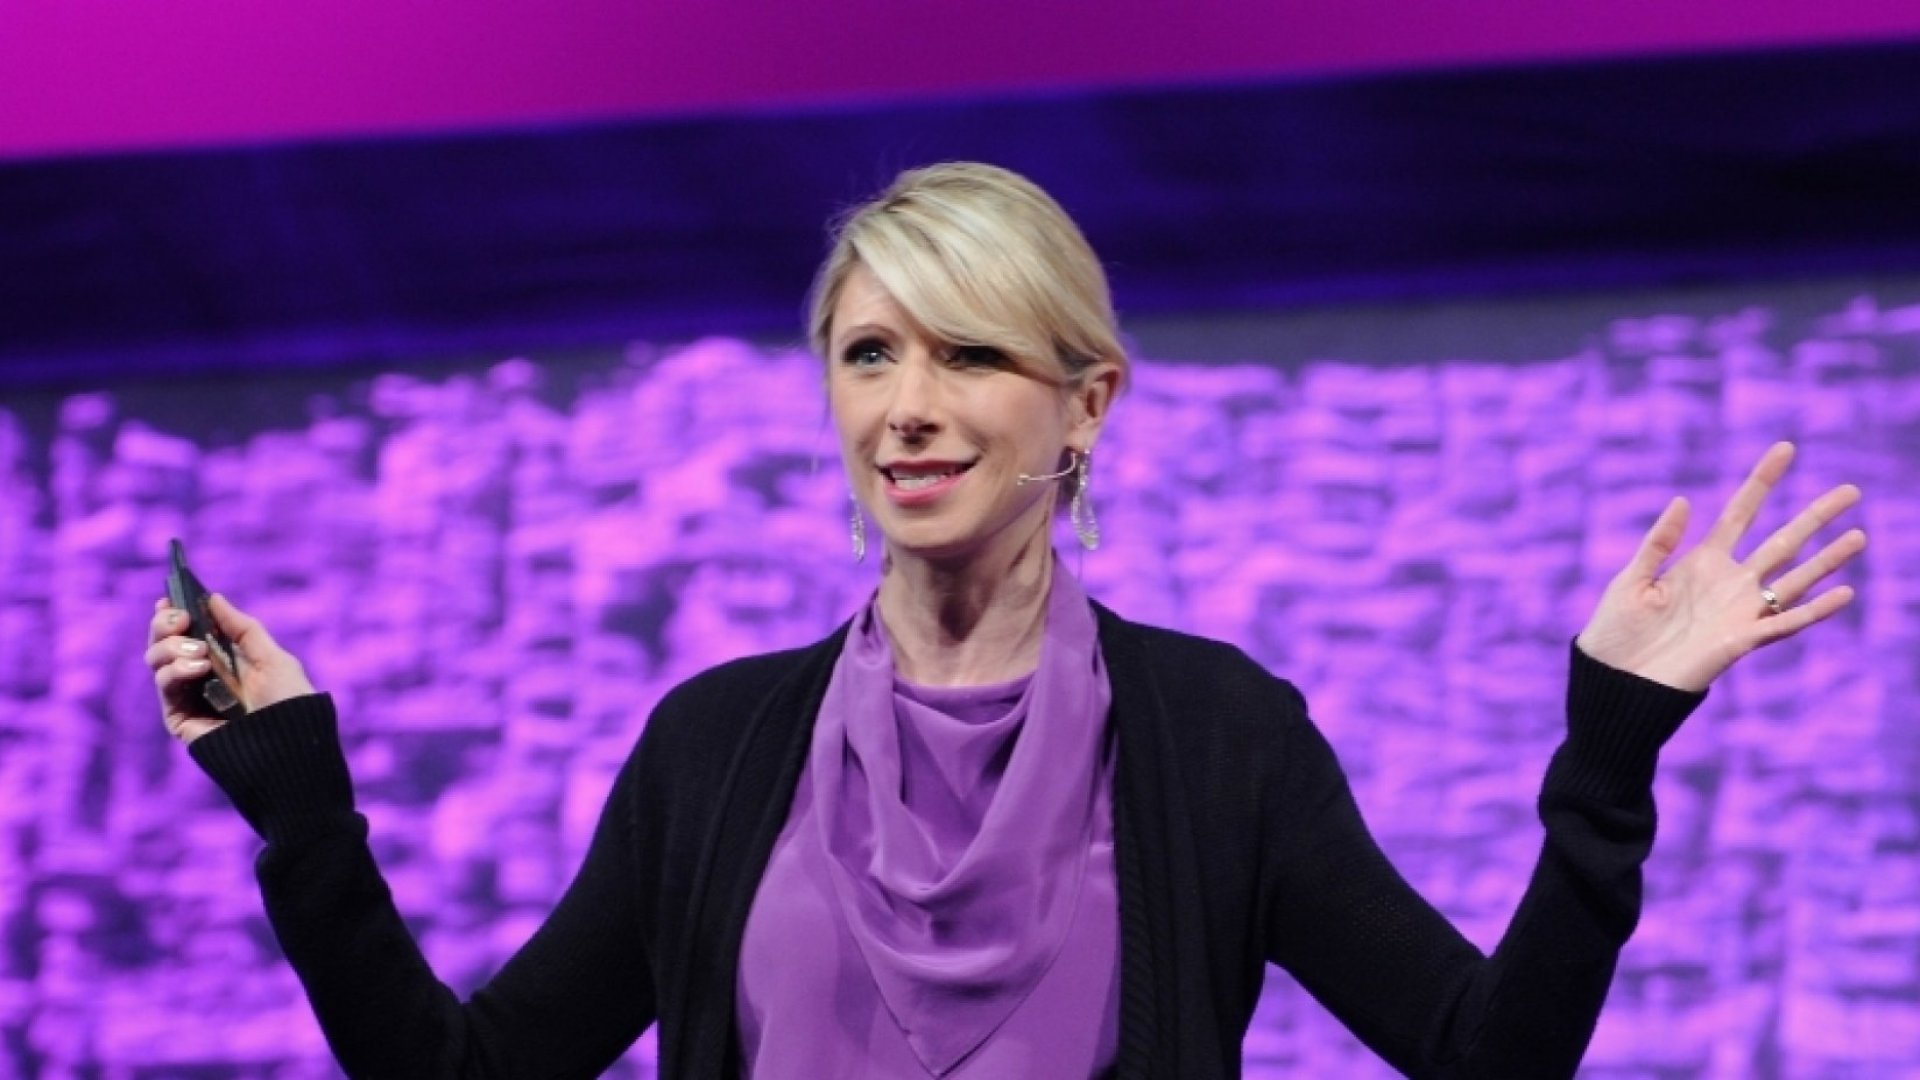 3 Awesome TED Talks That Will Make You a Better Person